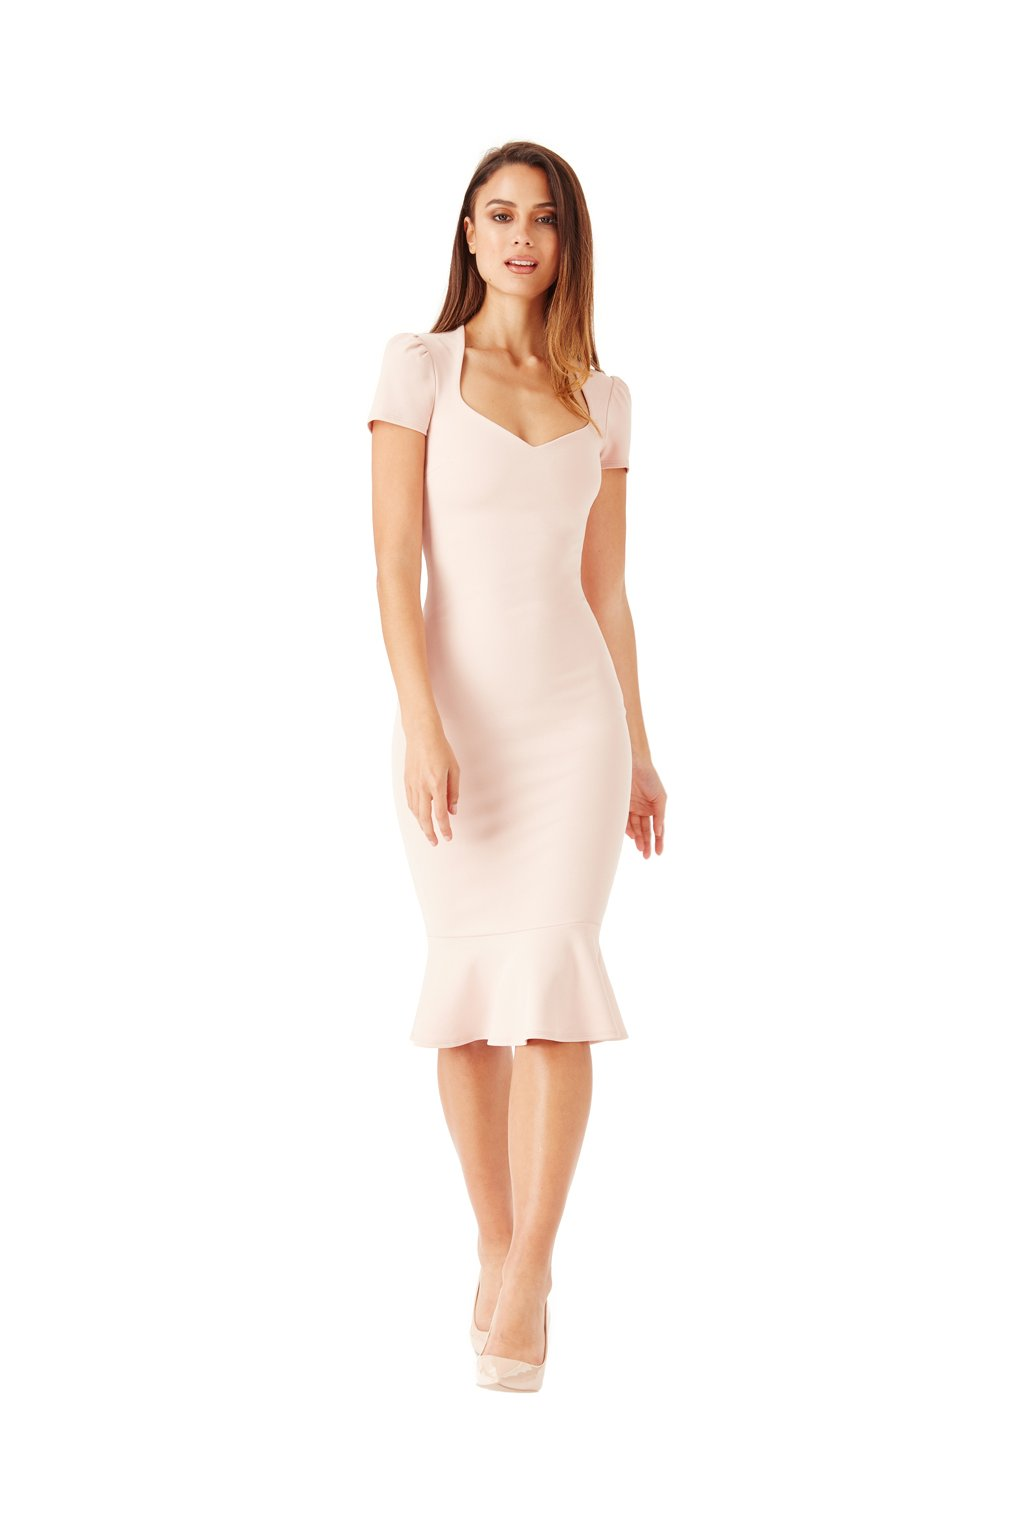 DR673 nude front l